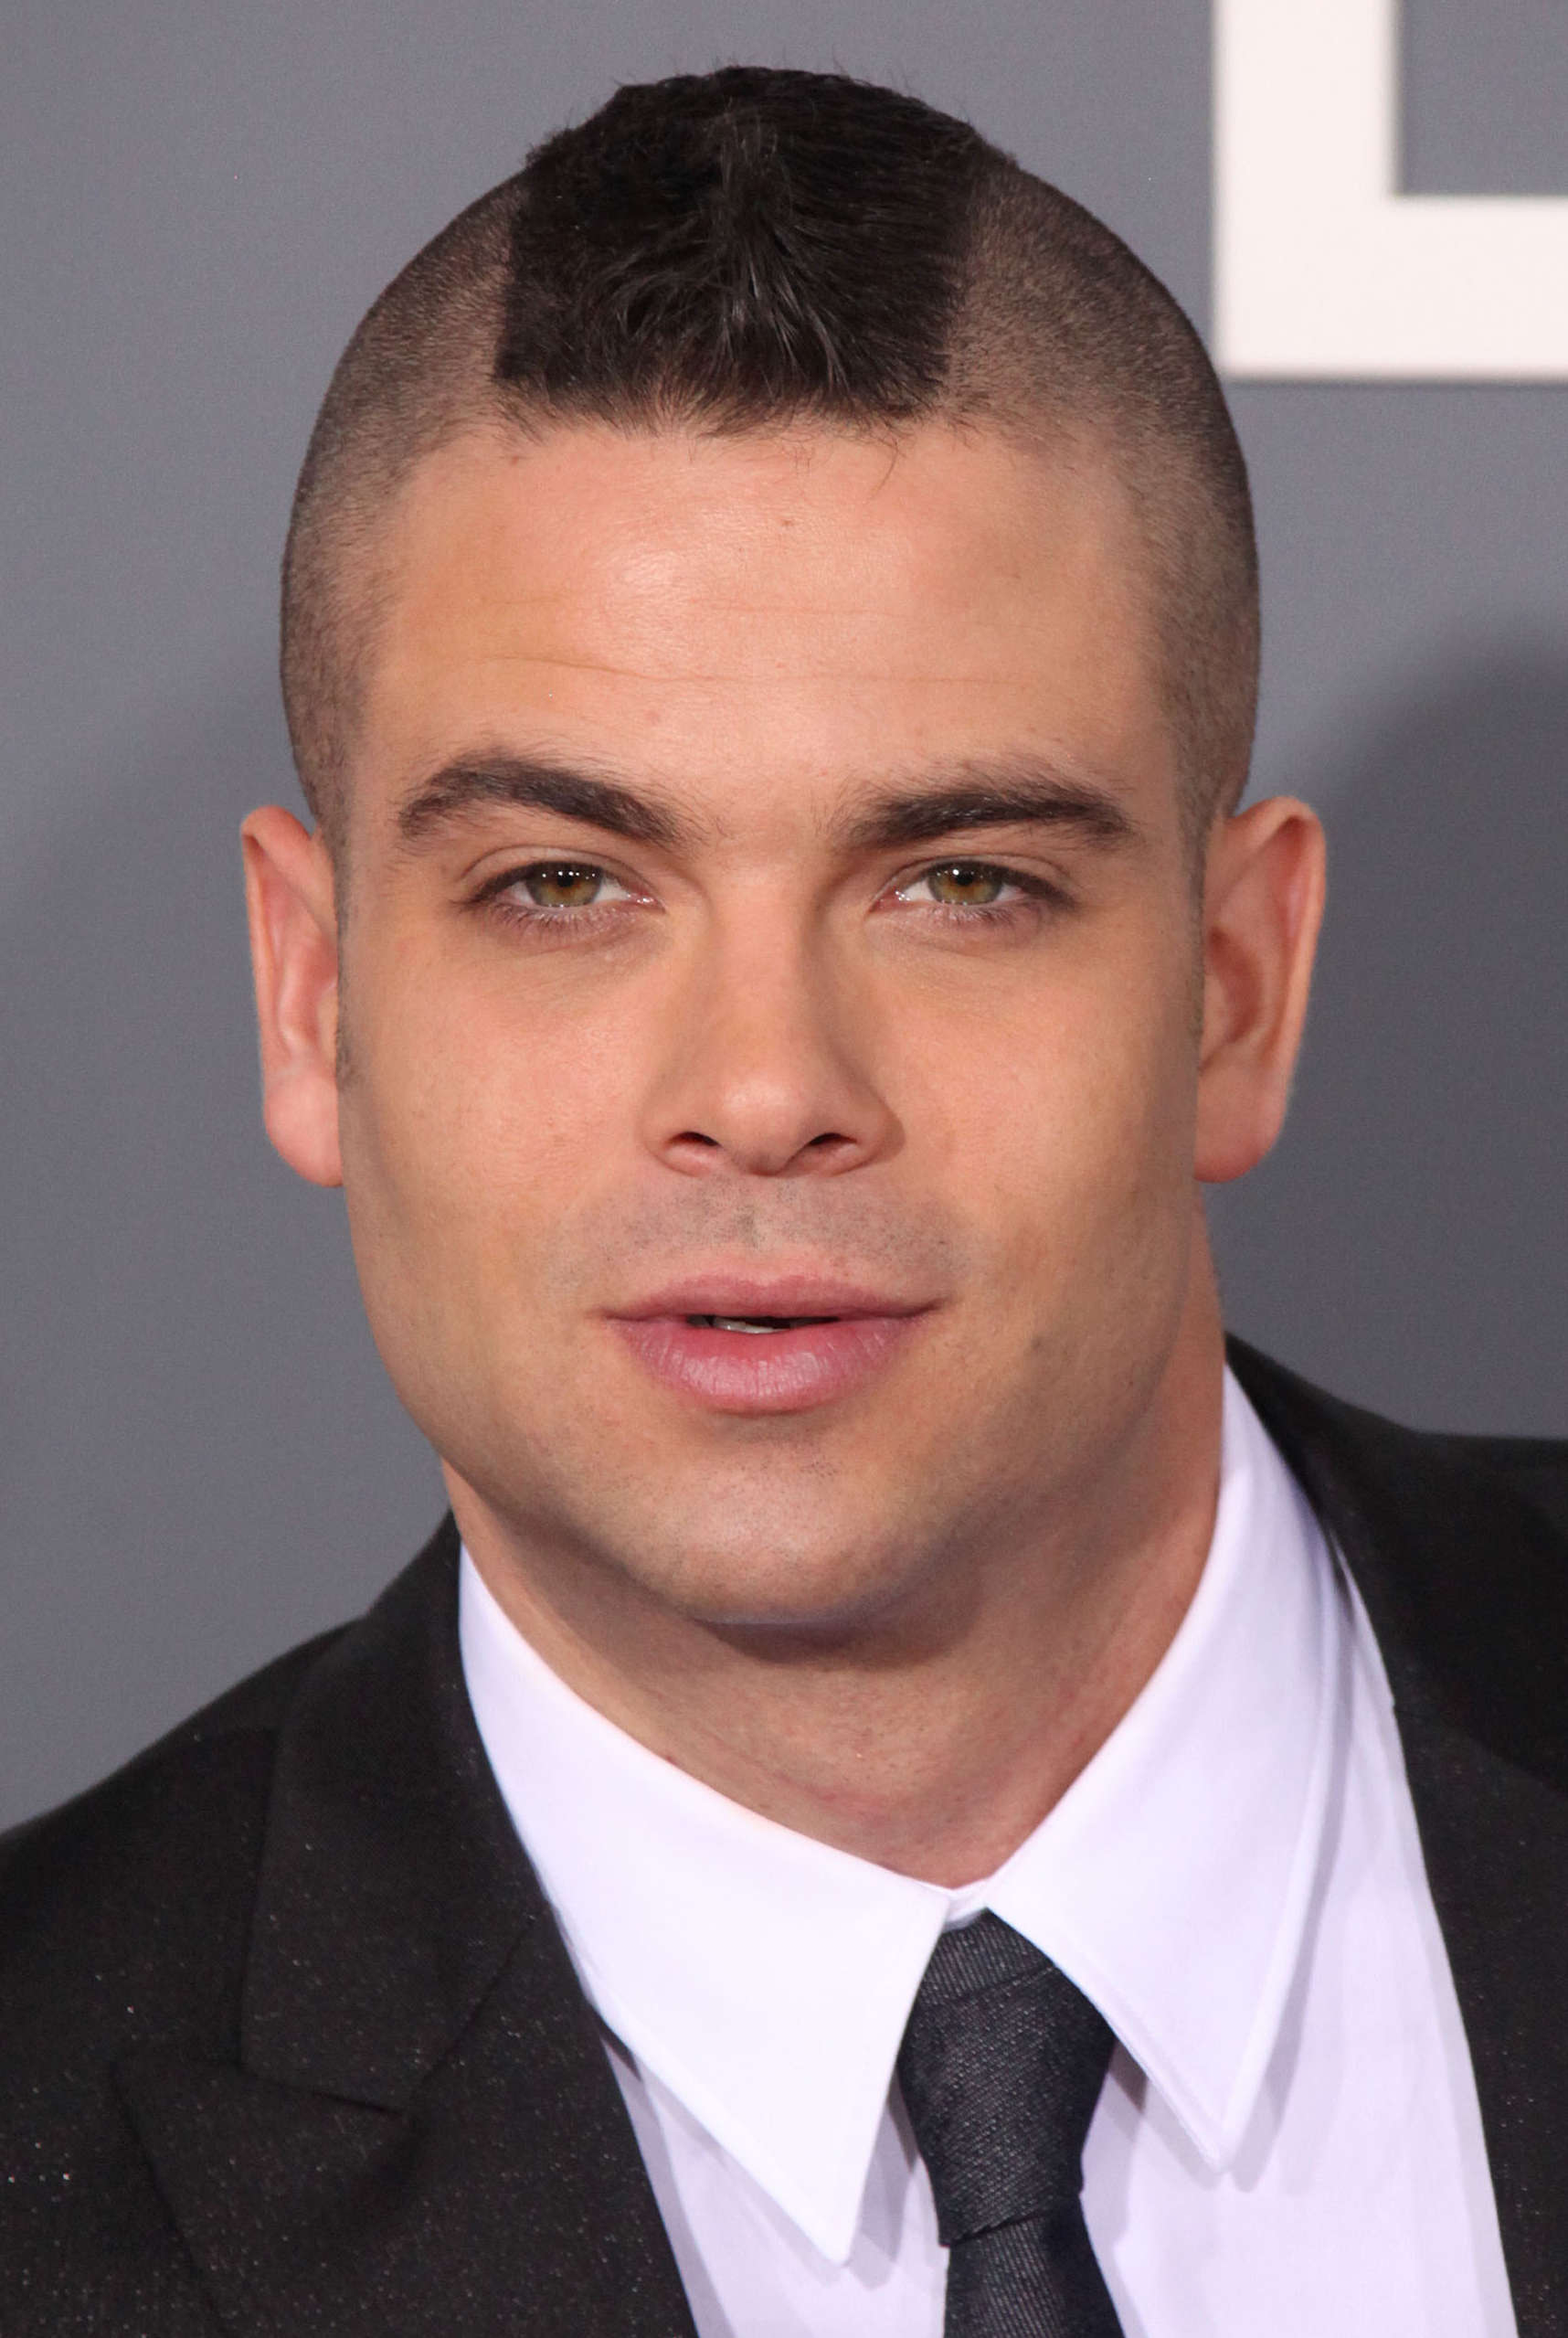 Mark Salling's High and Tight Raccoon